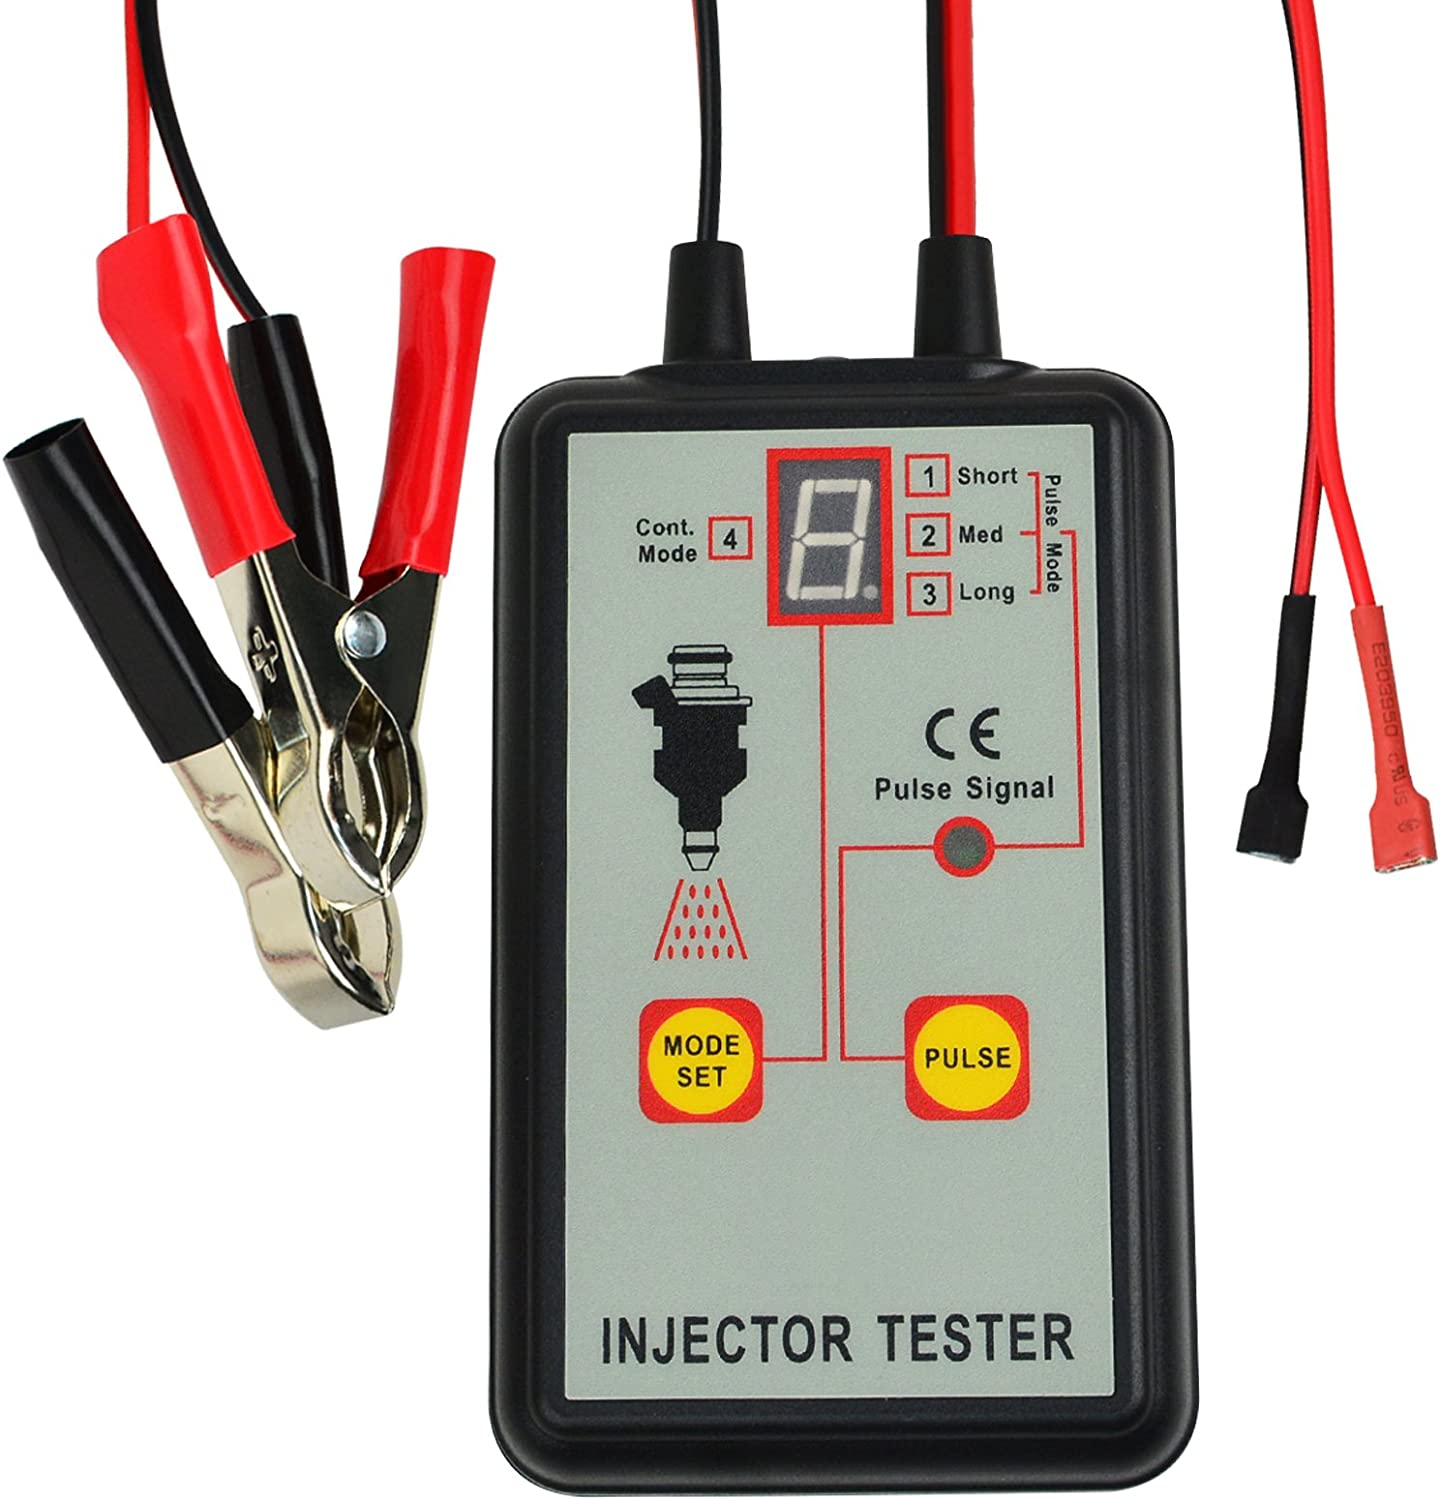 Automotive Fuel Injector Tester, 12V 4 Pulse Modes, Handheld Car Vehicle Fuel Pressure System Diagnostic Scan Testing Tool Gauge, Individual Test Stuck/Leaking/Burnt-out Problem